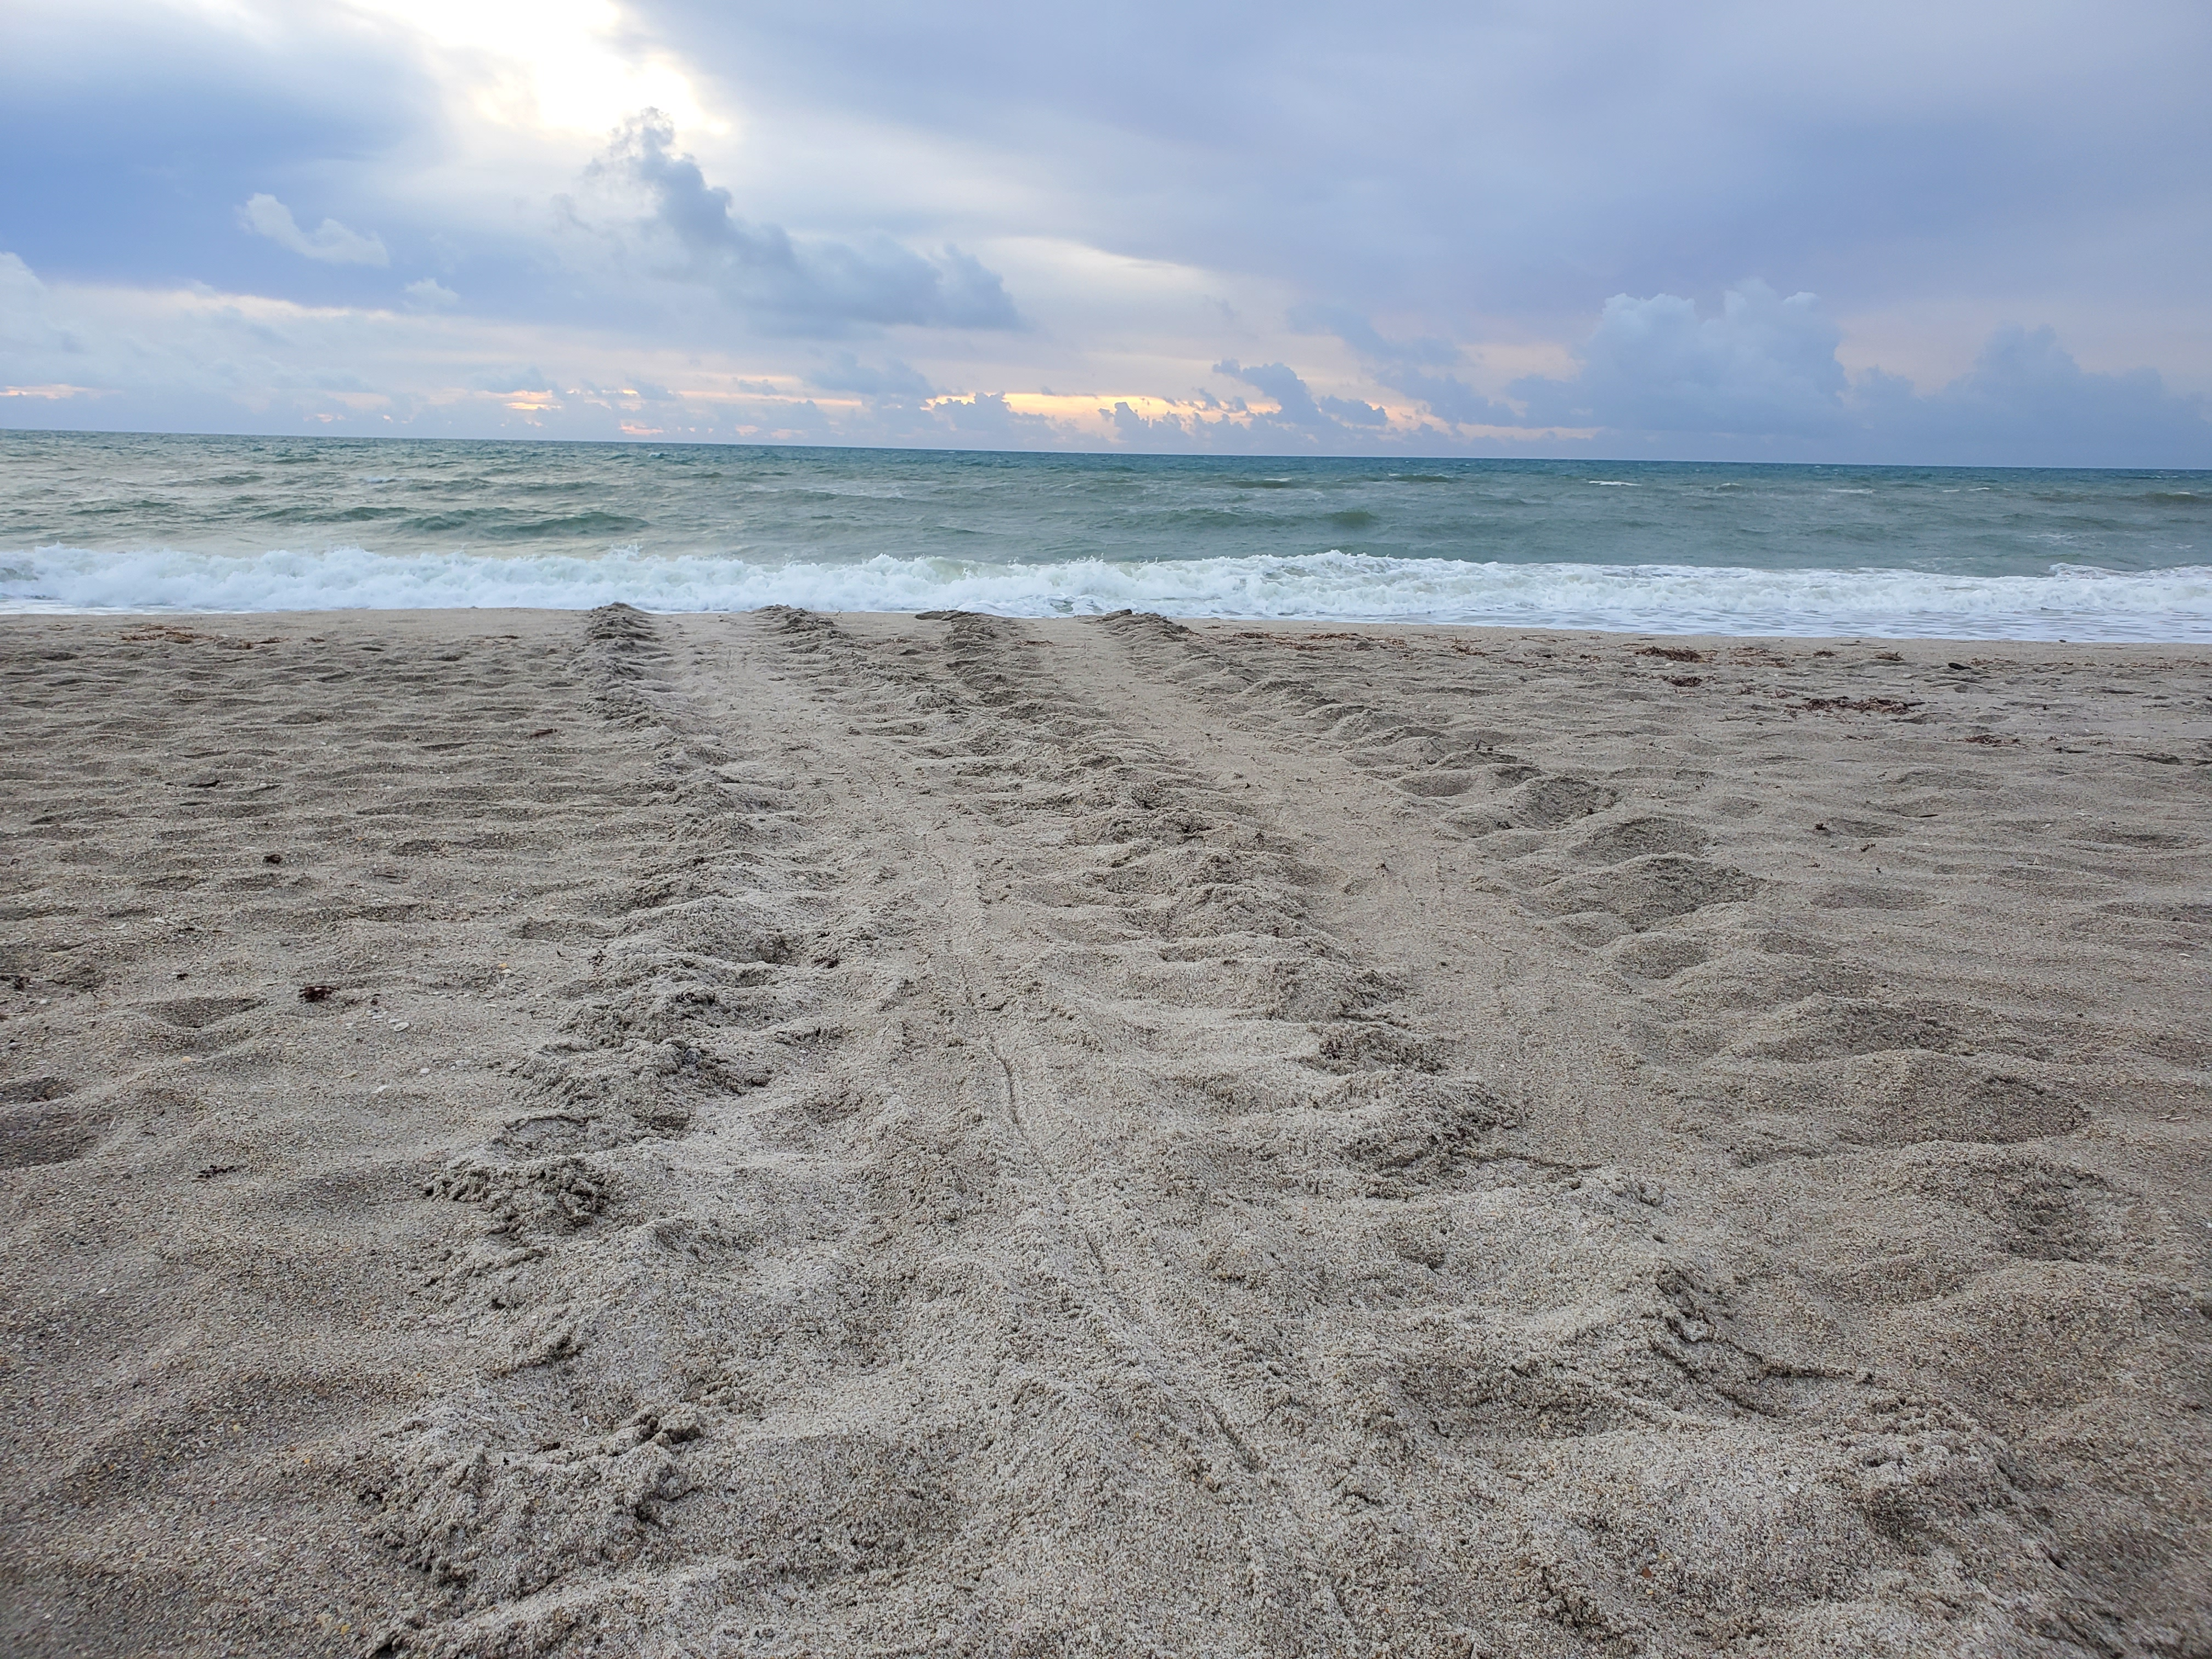 sea turtle tracks